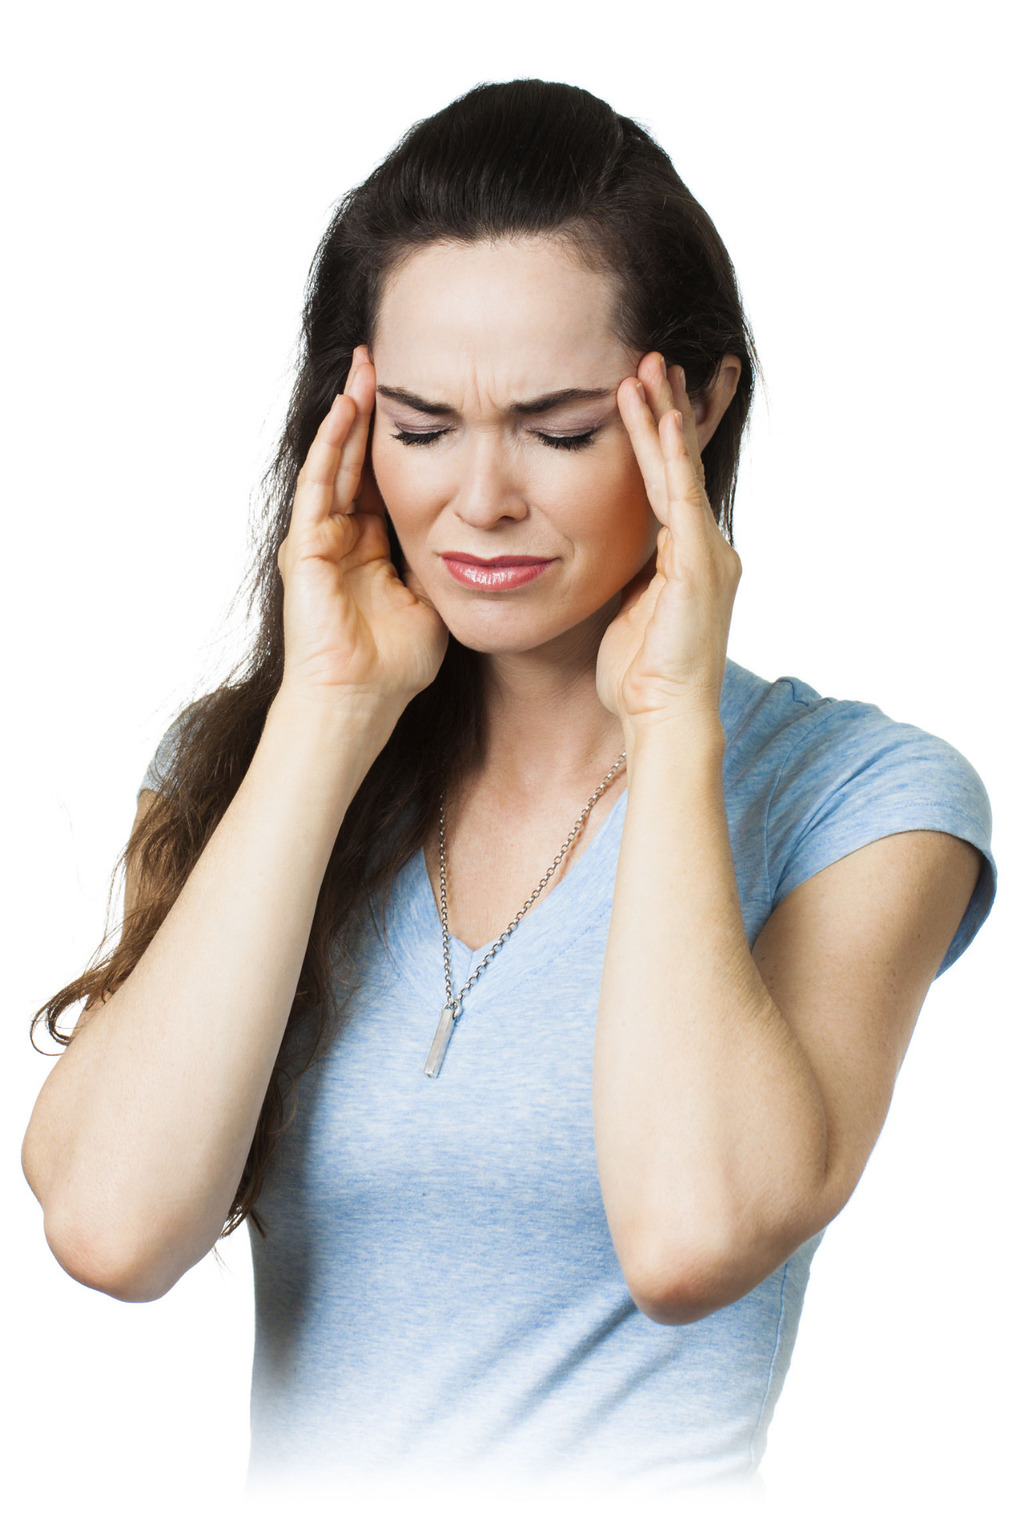 Osteopathy & headaches